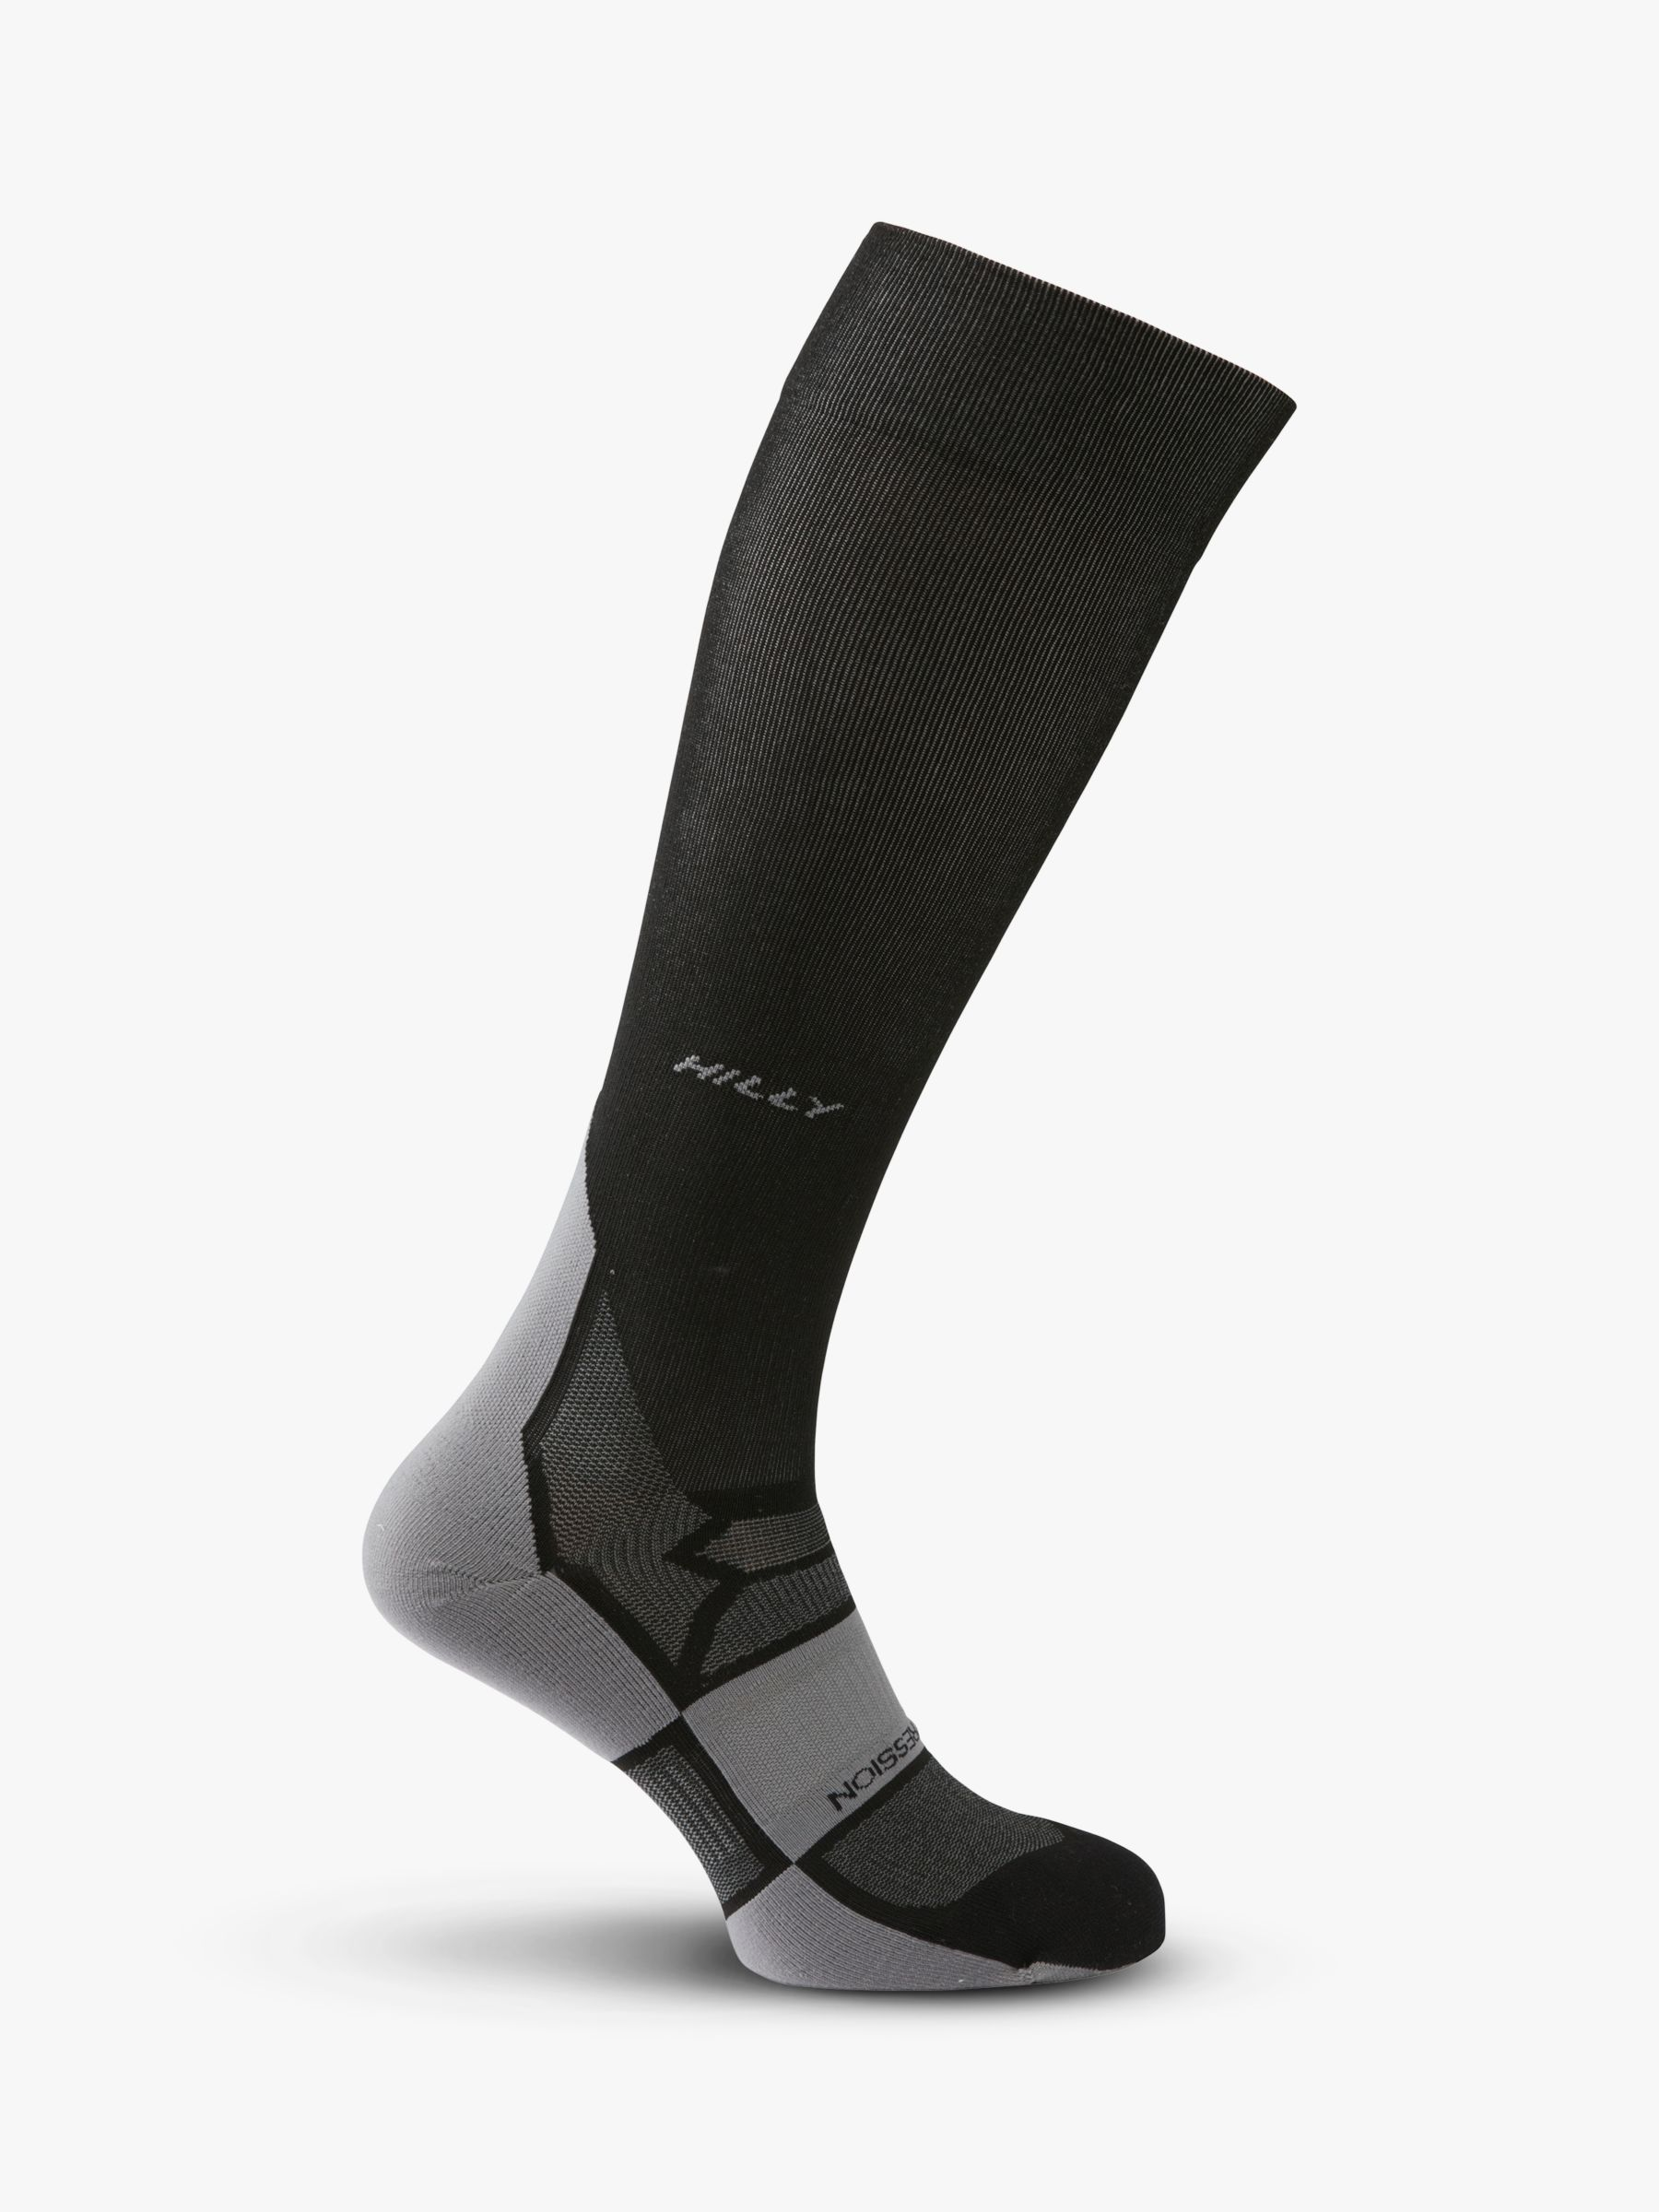 Hilly Hilly Pulse Compression Running Socks, Black/Grey